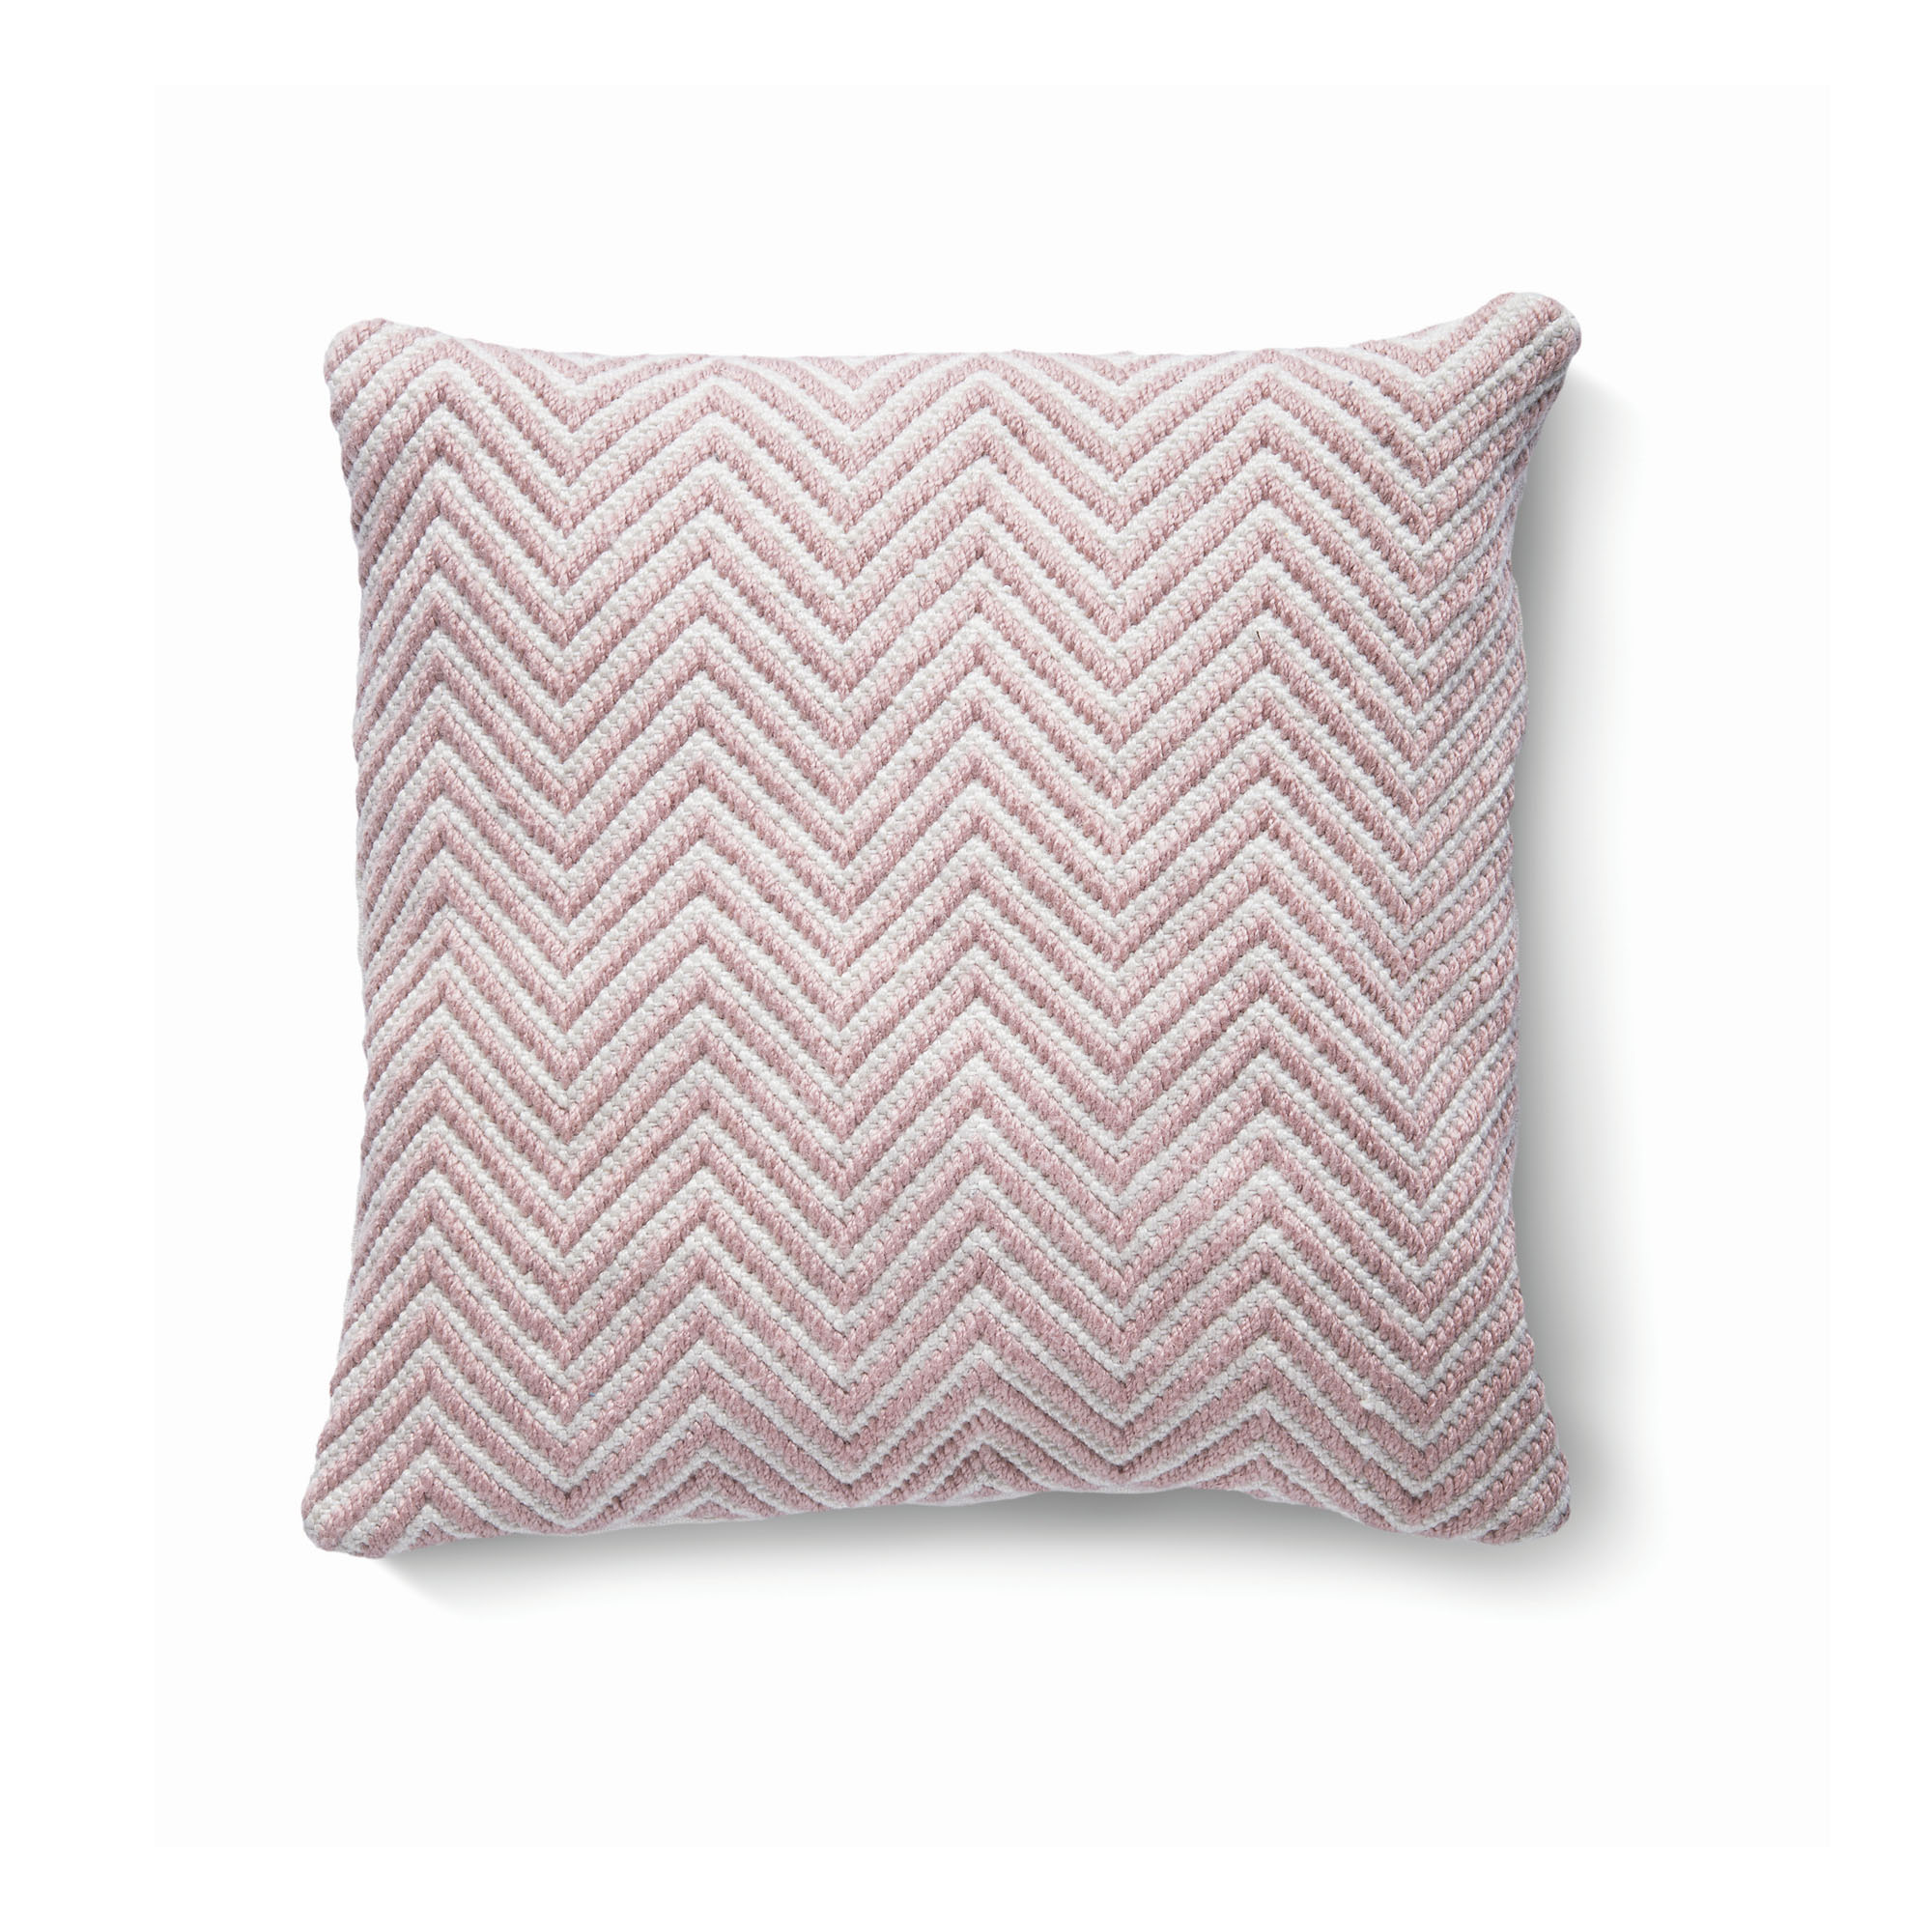 Rose pink cushion